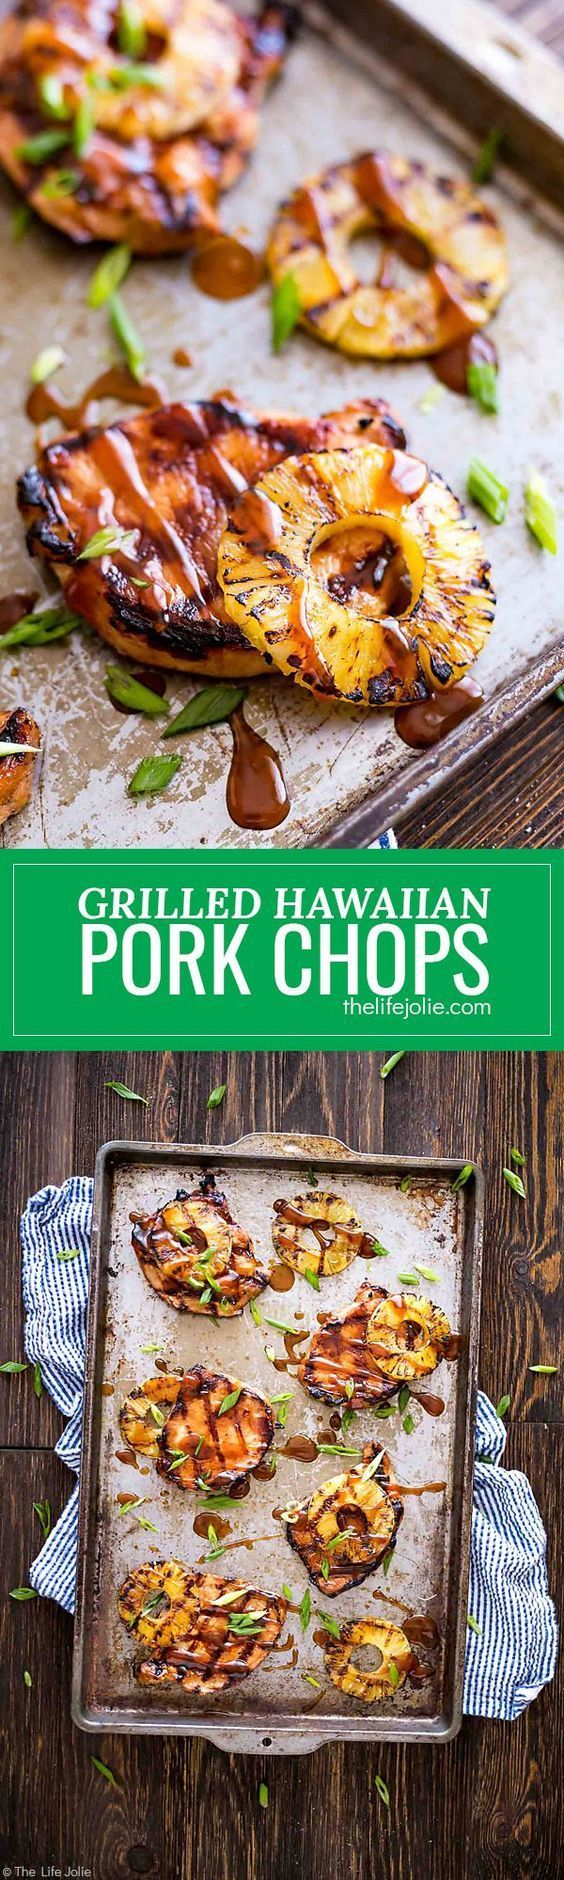 These Grilled Hawaiian Pork Chops are an easy recipe for a quick weeknight dinner. It's really easy to marinate in things like soy sauce and brown sugar and goes great with grilled pineapple and rice. This mouthwatering sweet and savory dish is the perfec